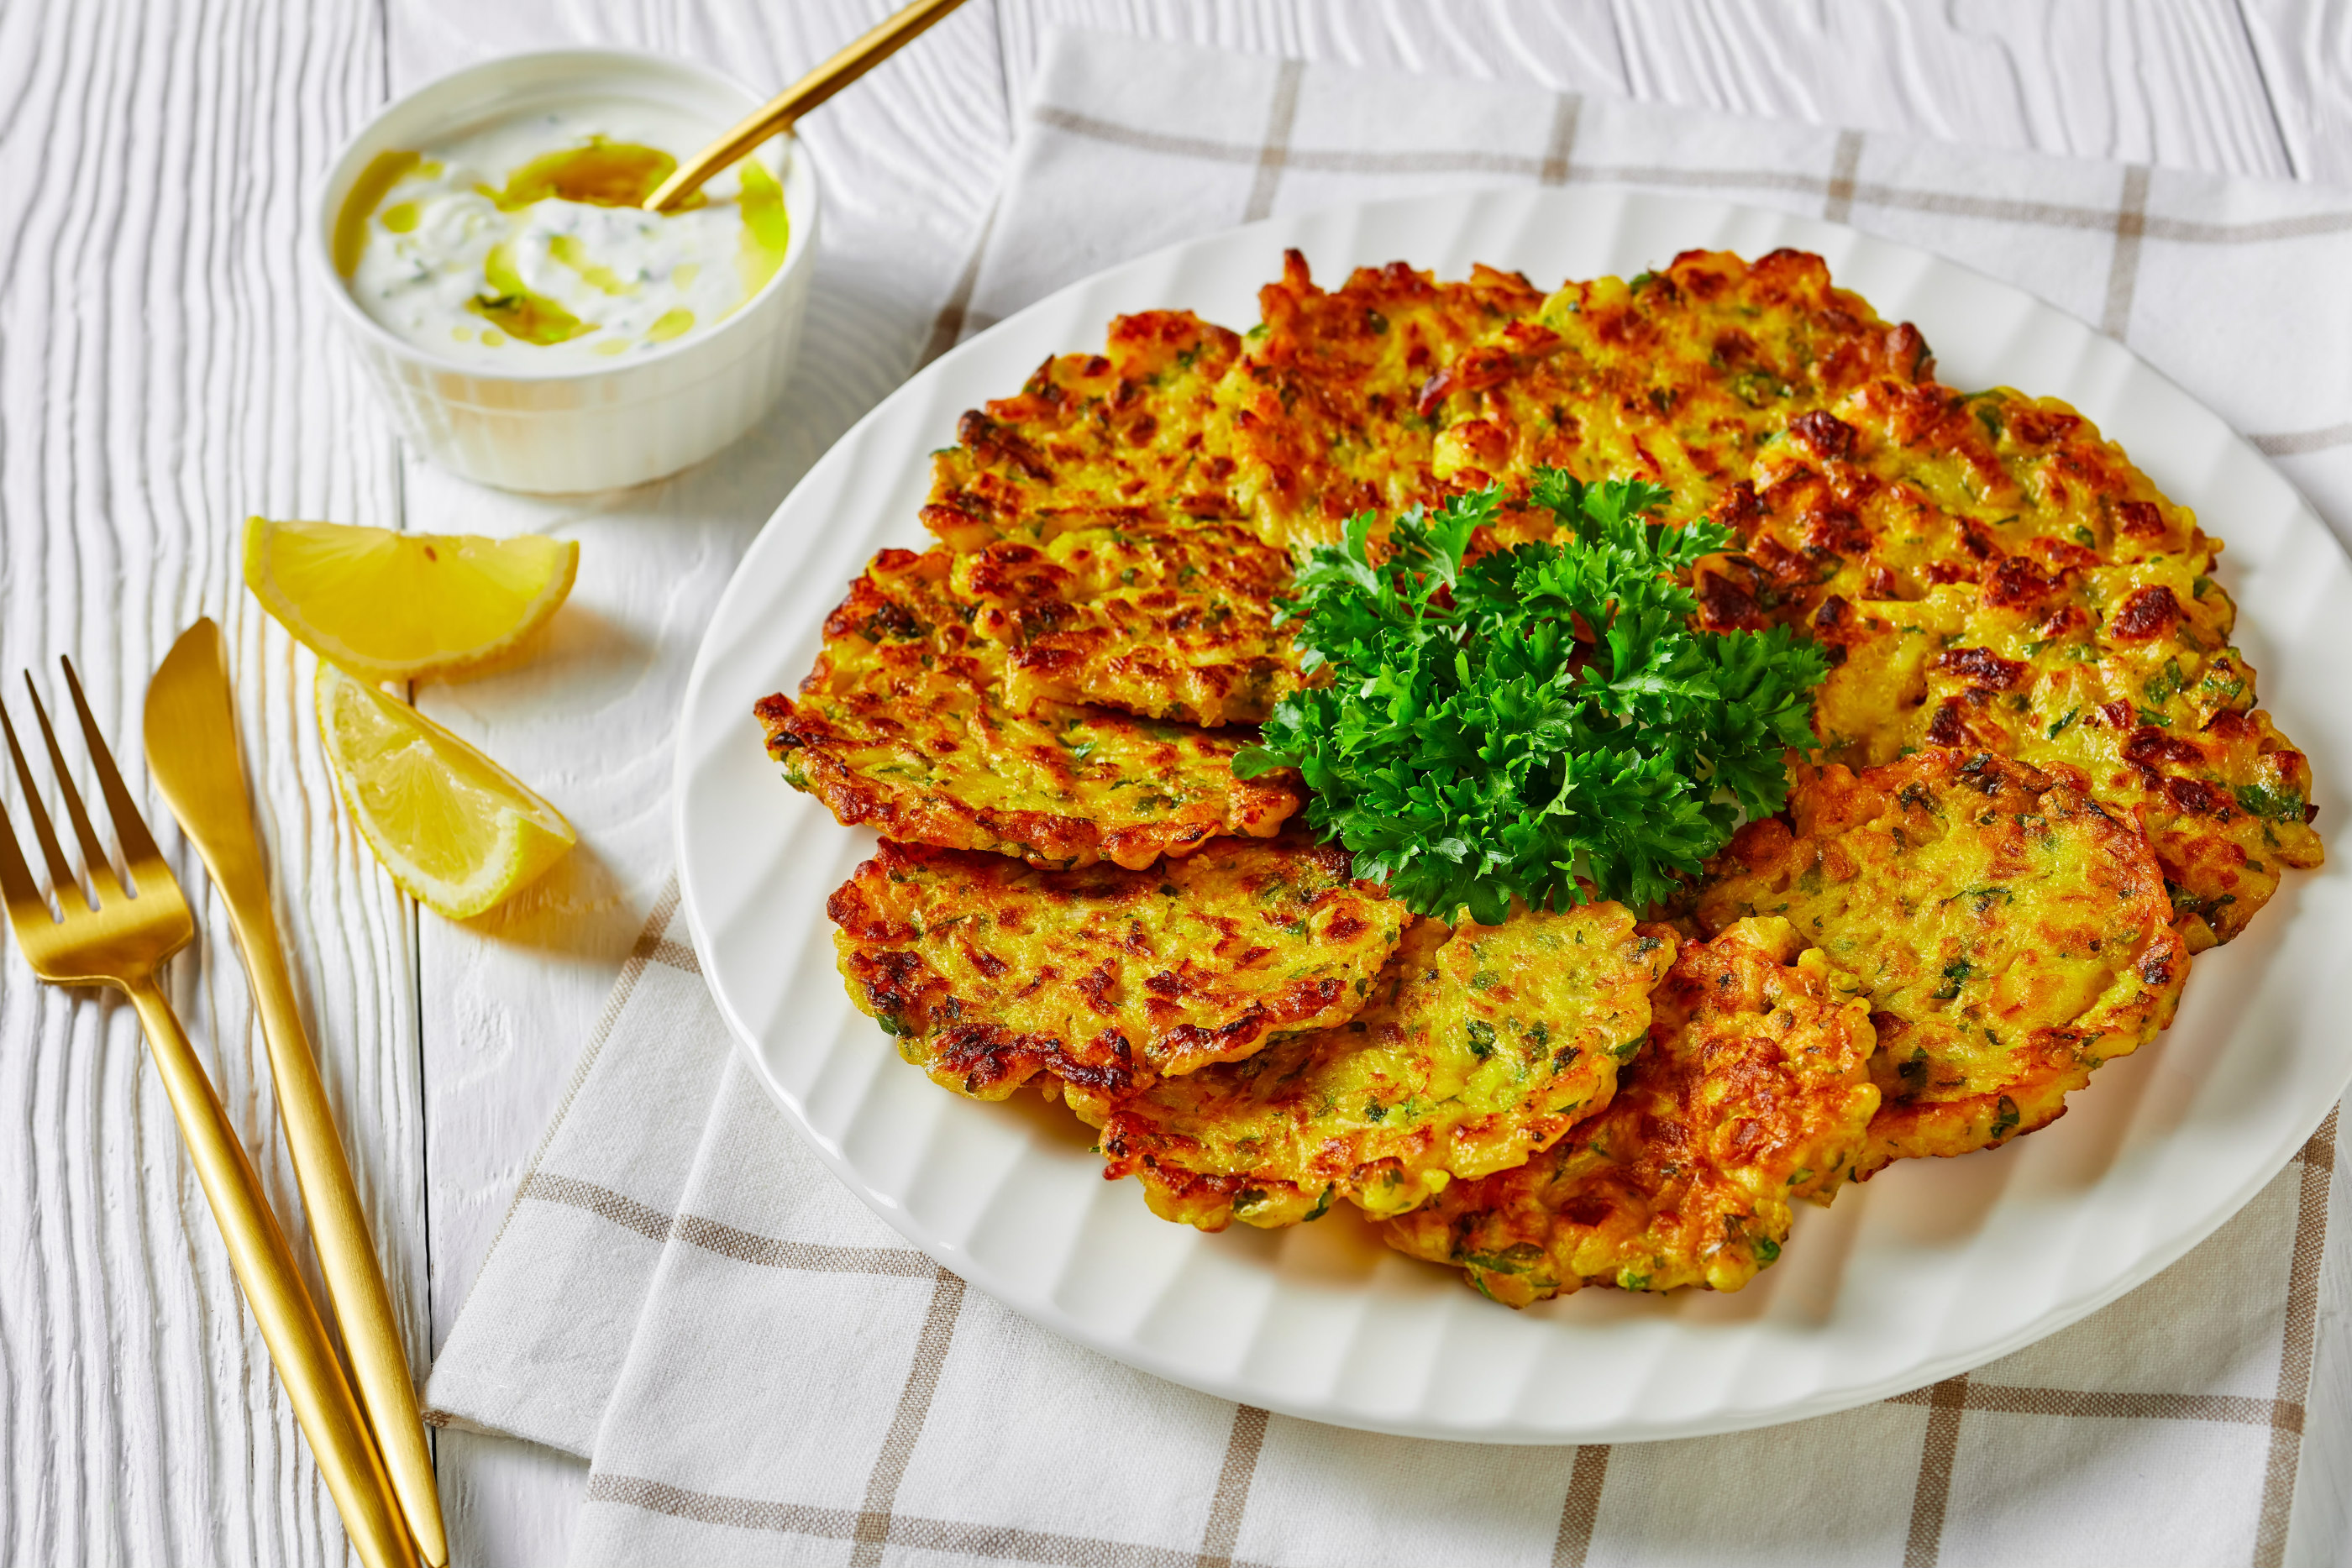 Plate of leek patties on a tablescape